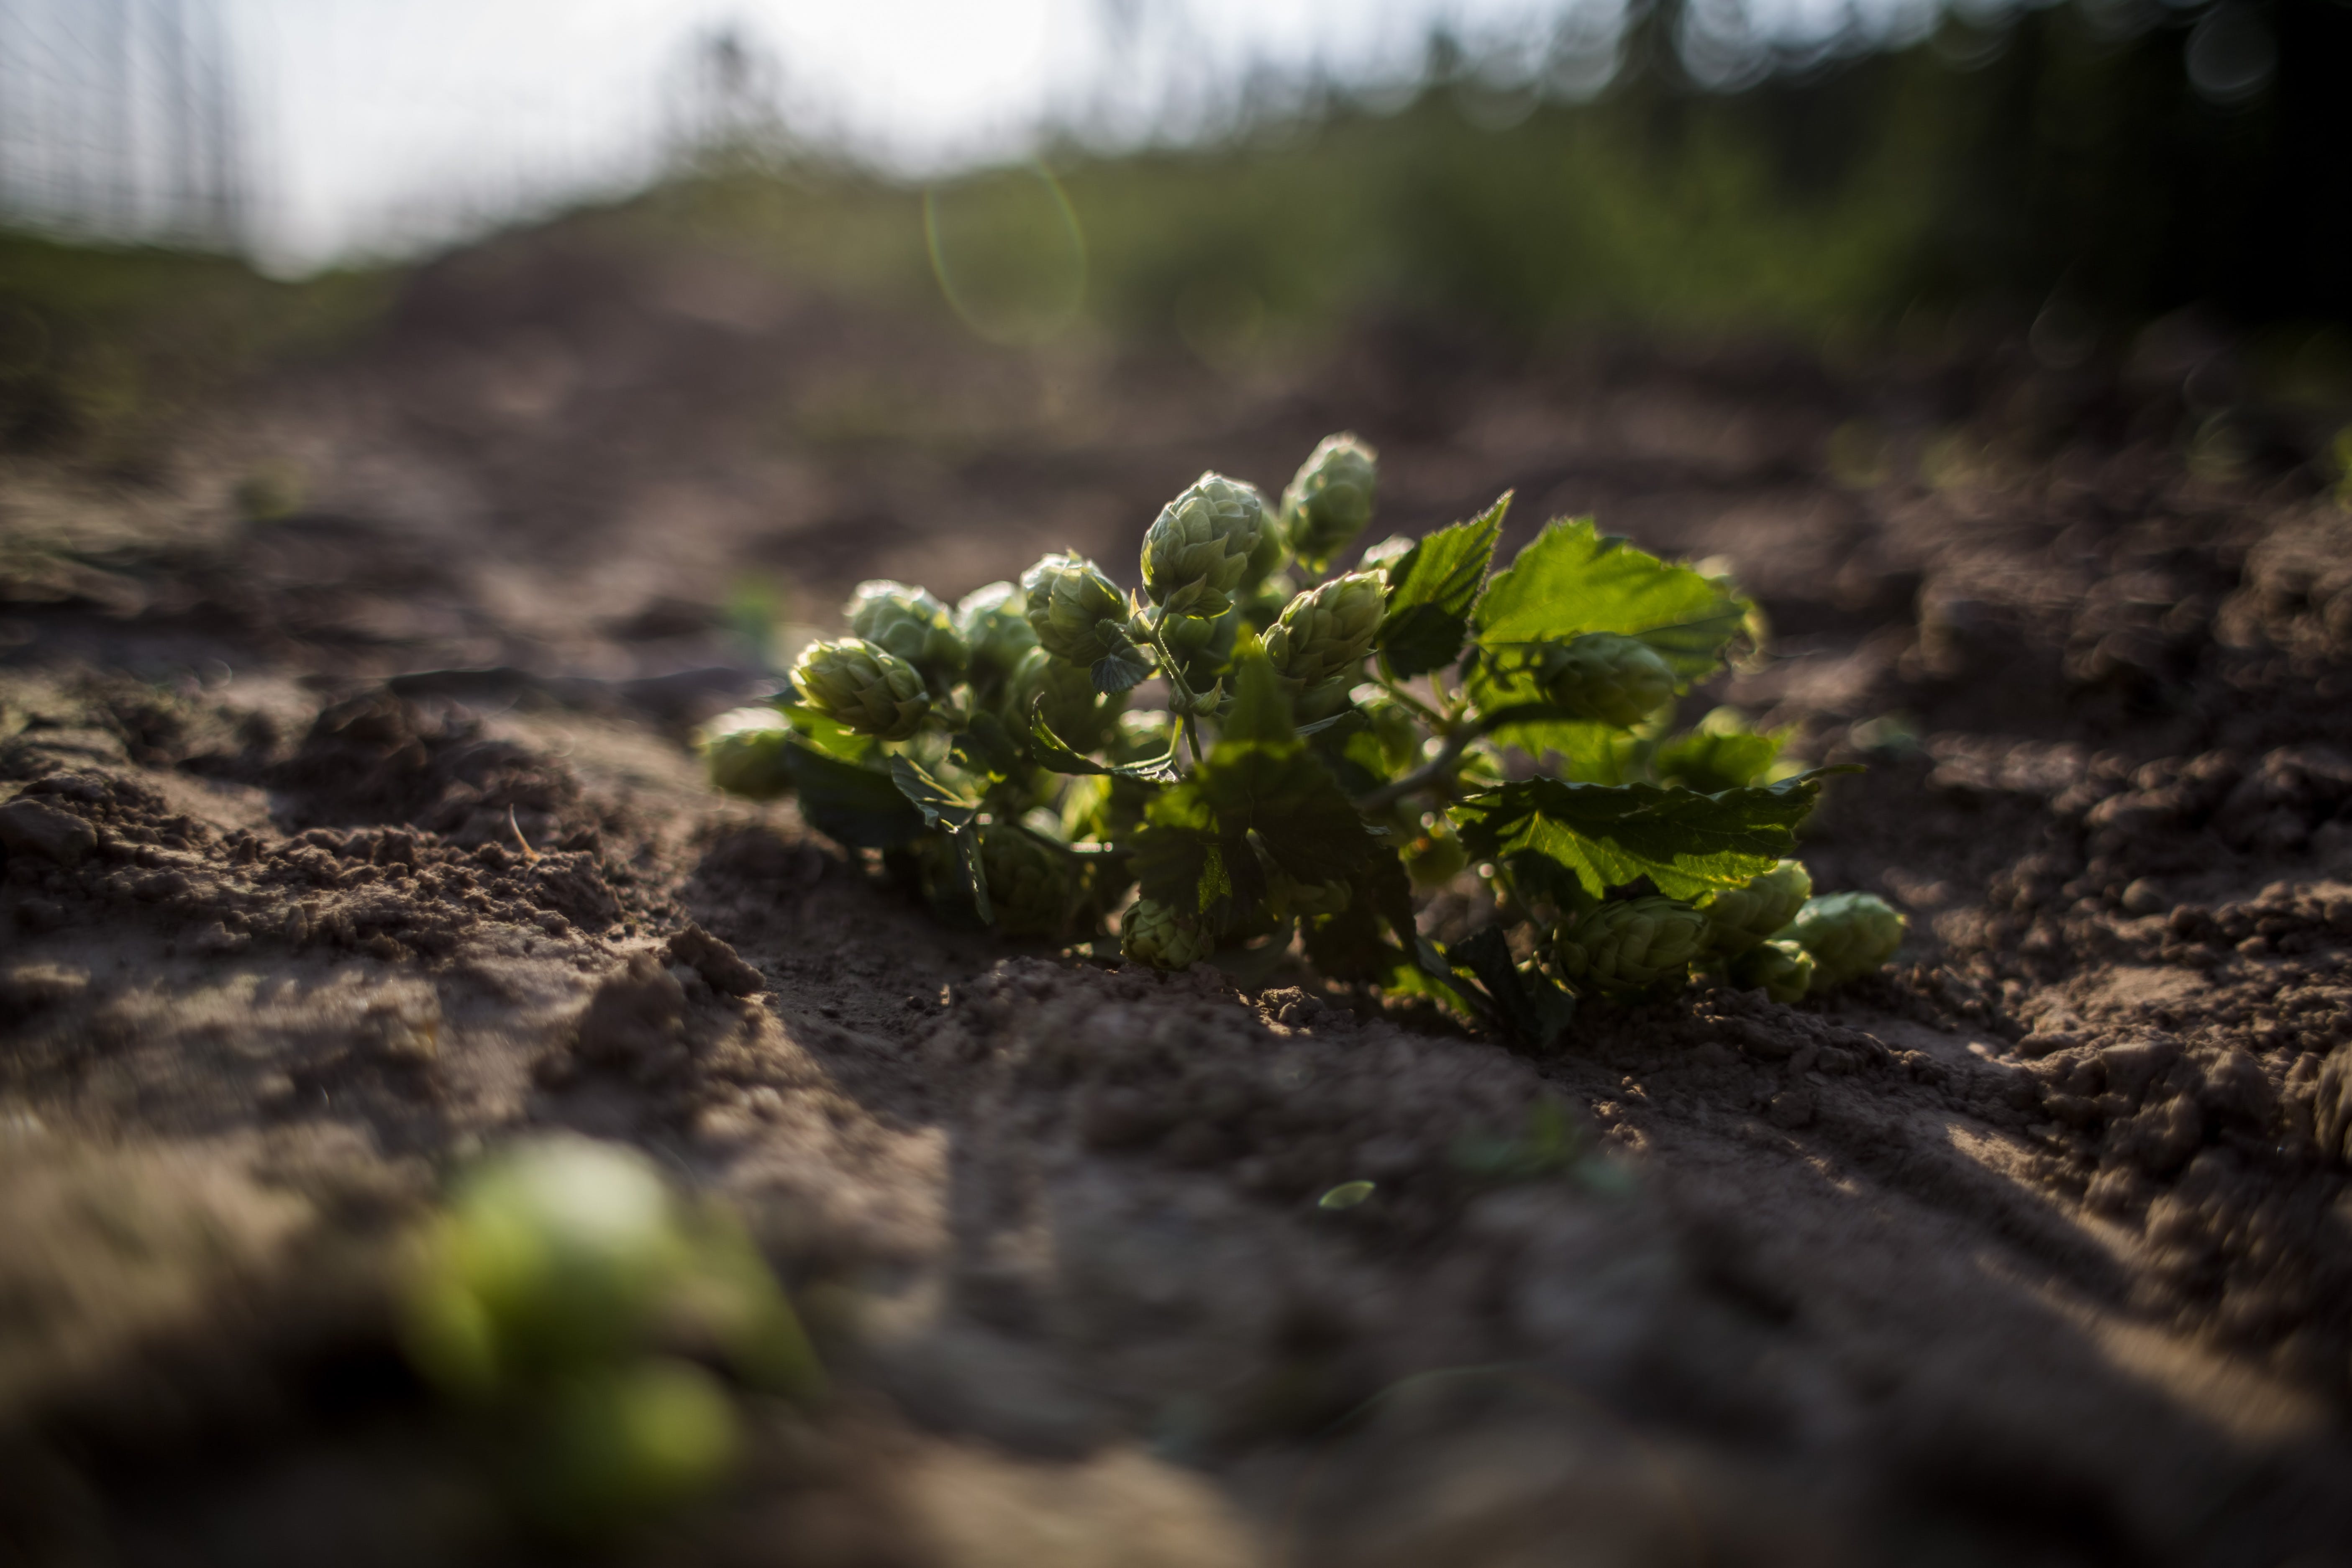 Hops Could be The First Fully Legal Source of CBD0 Hops Discovered in India Could Help Bring Truly Legal CBD to Market